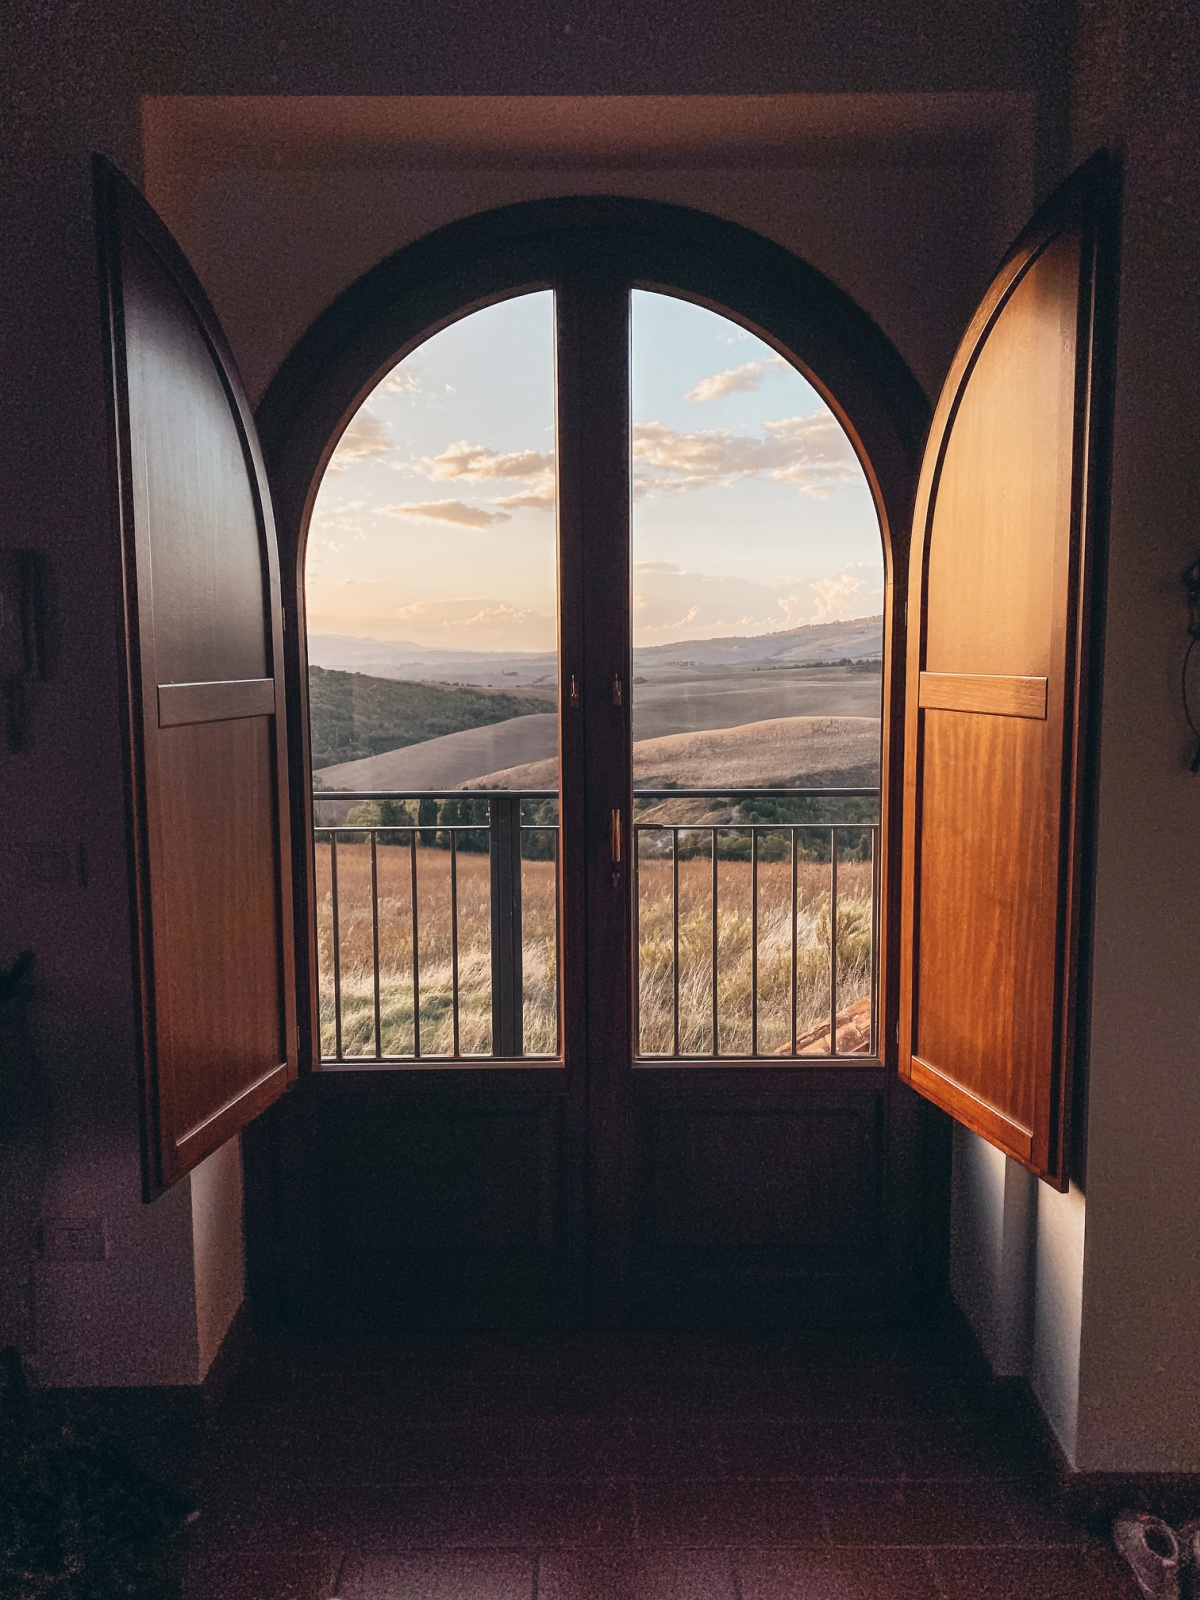 Choosing the right Tuscan Airbnb: Part 2